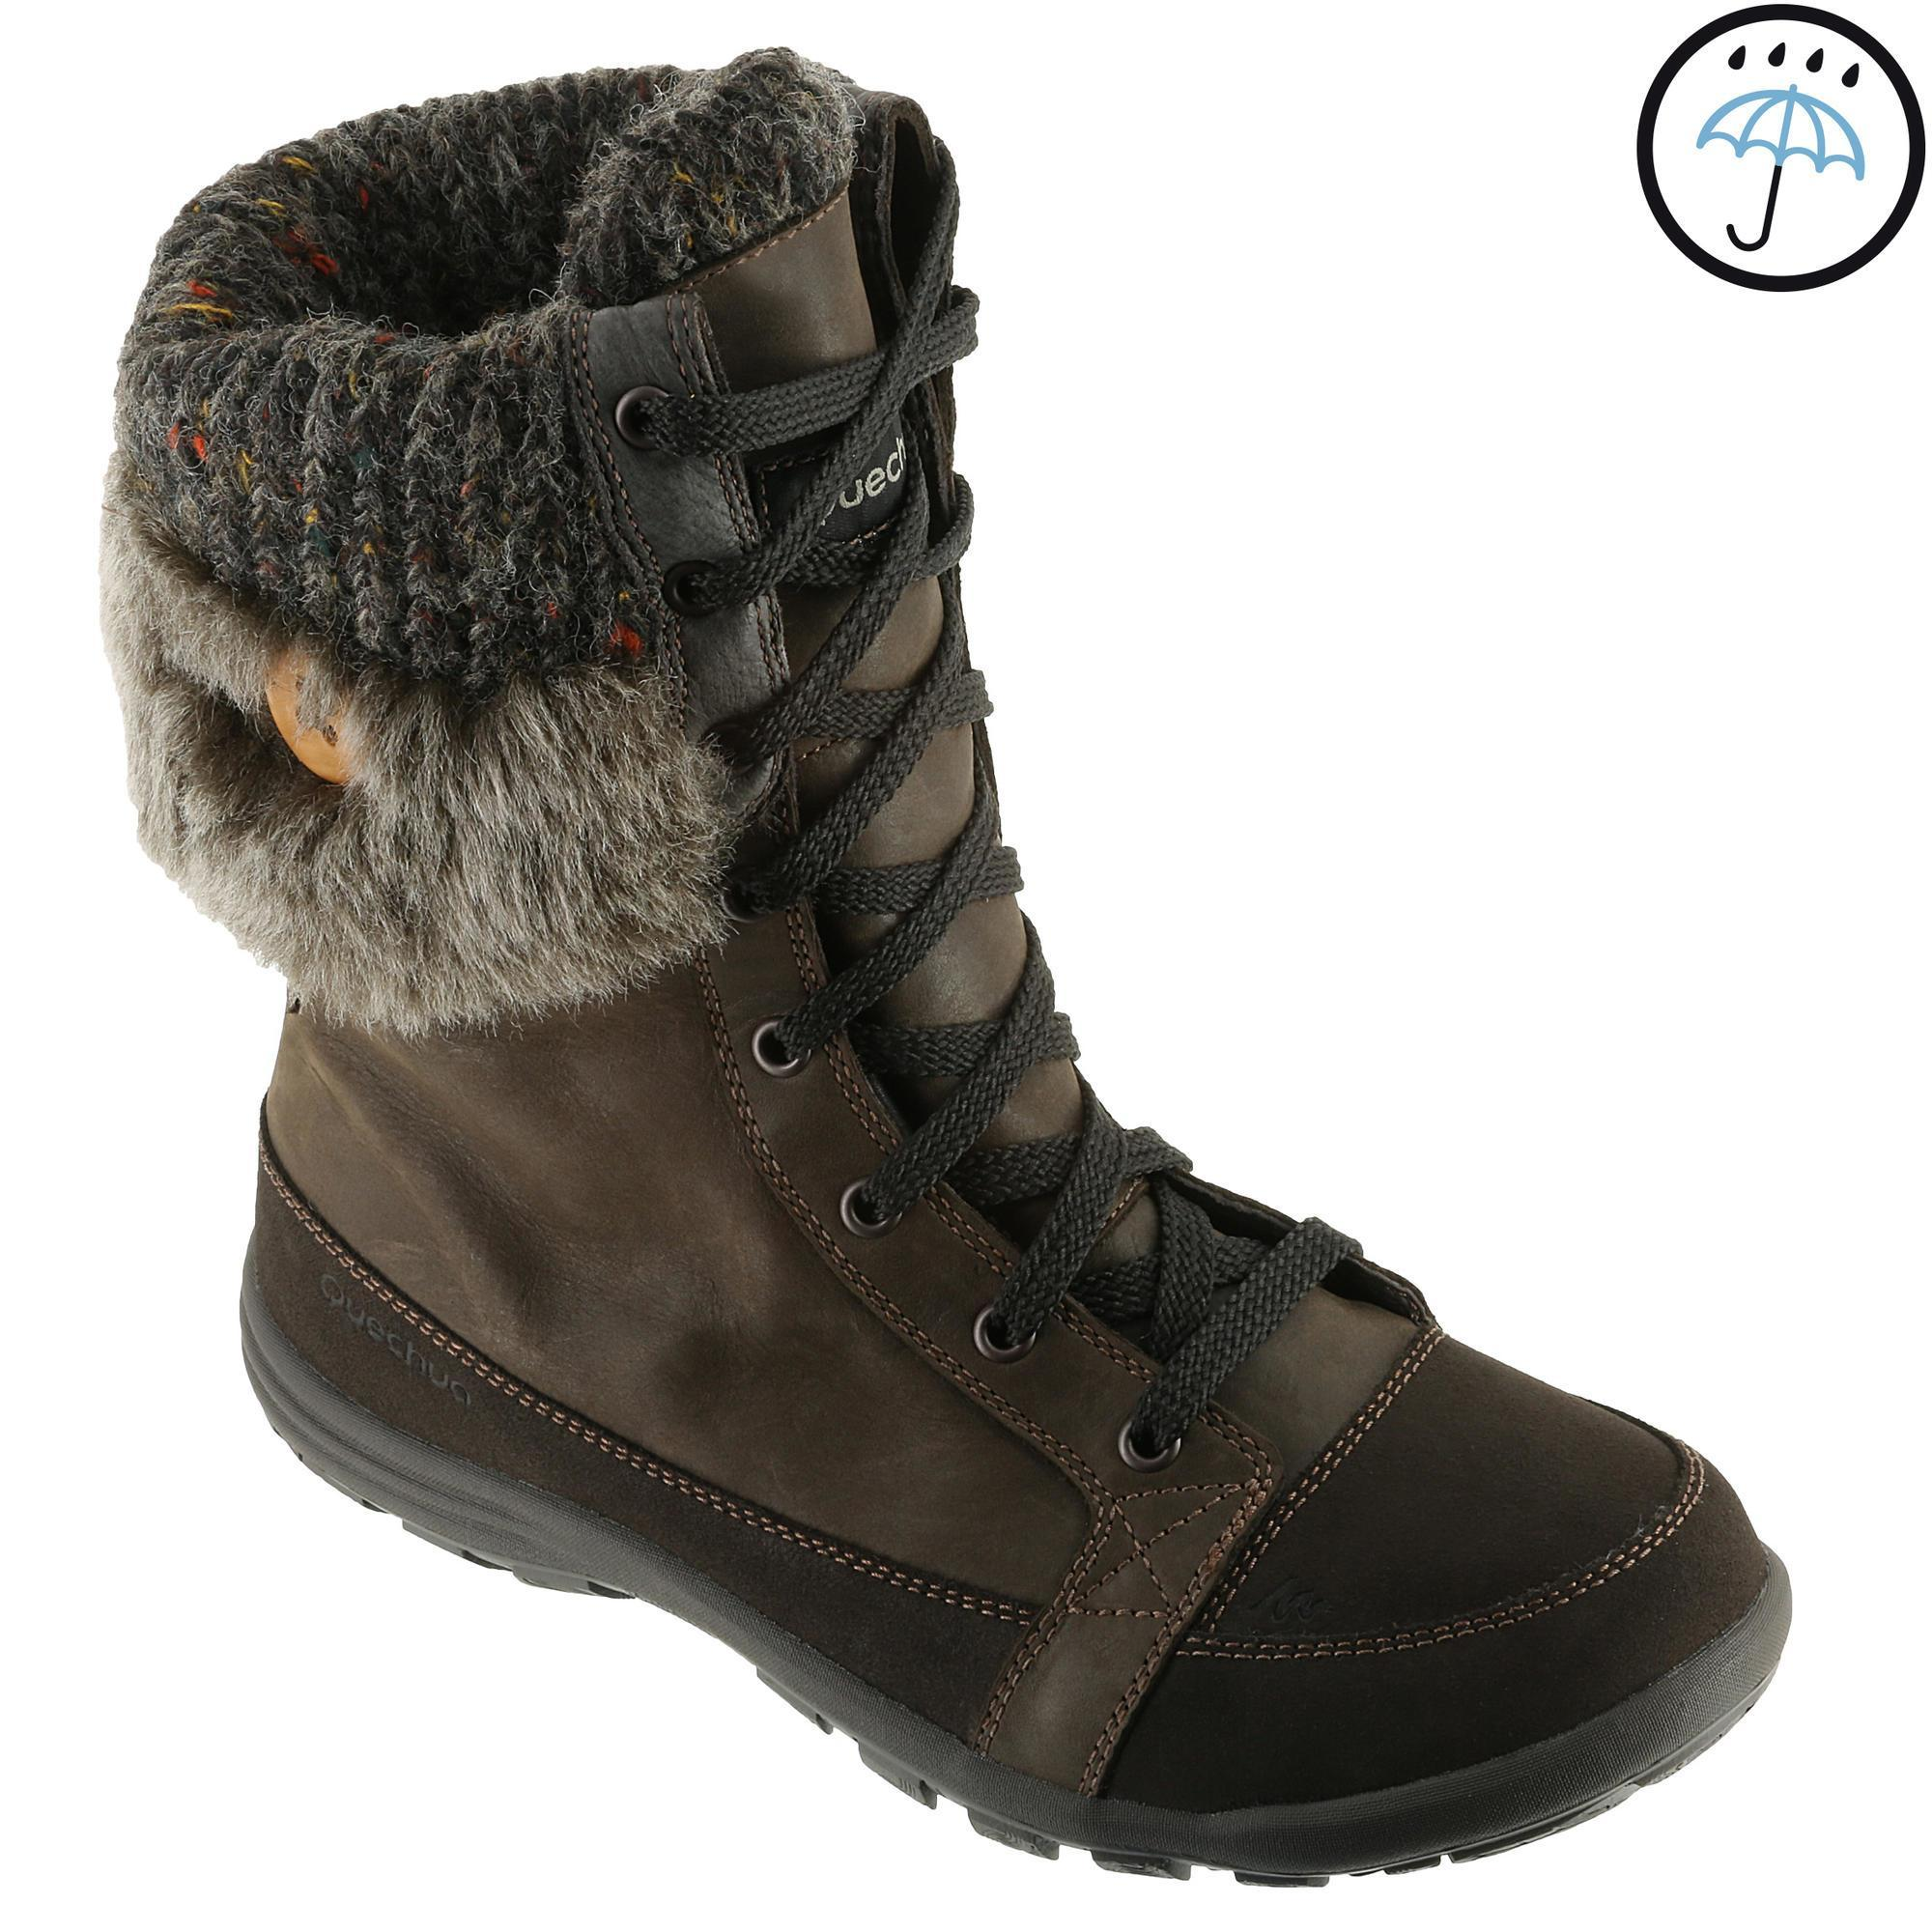 Arpenaz 700 Warm Waterproof Women S Hiking Boots Brown